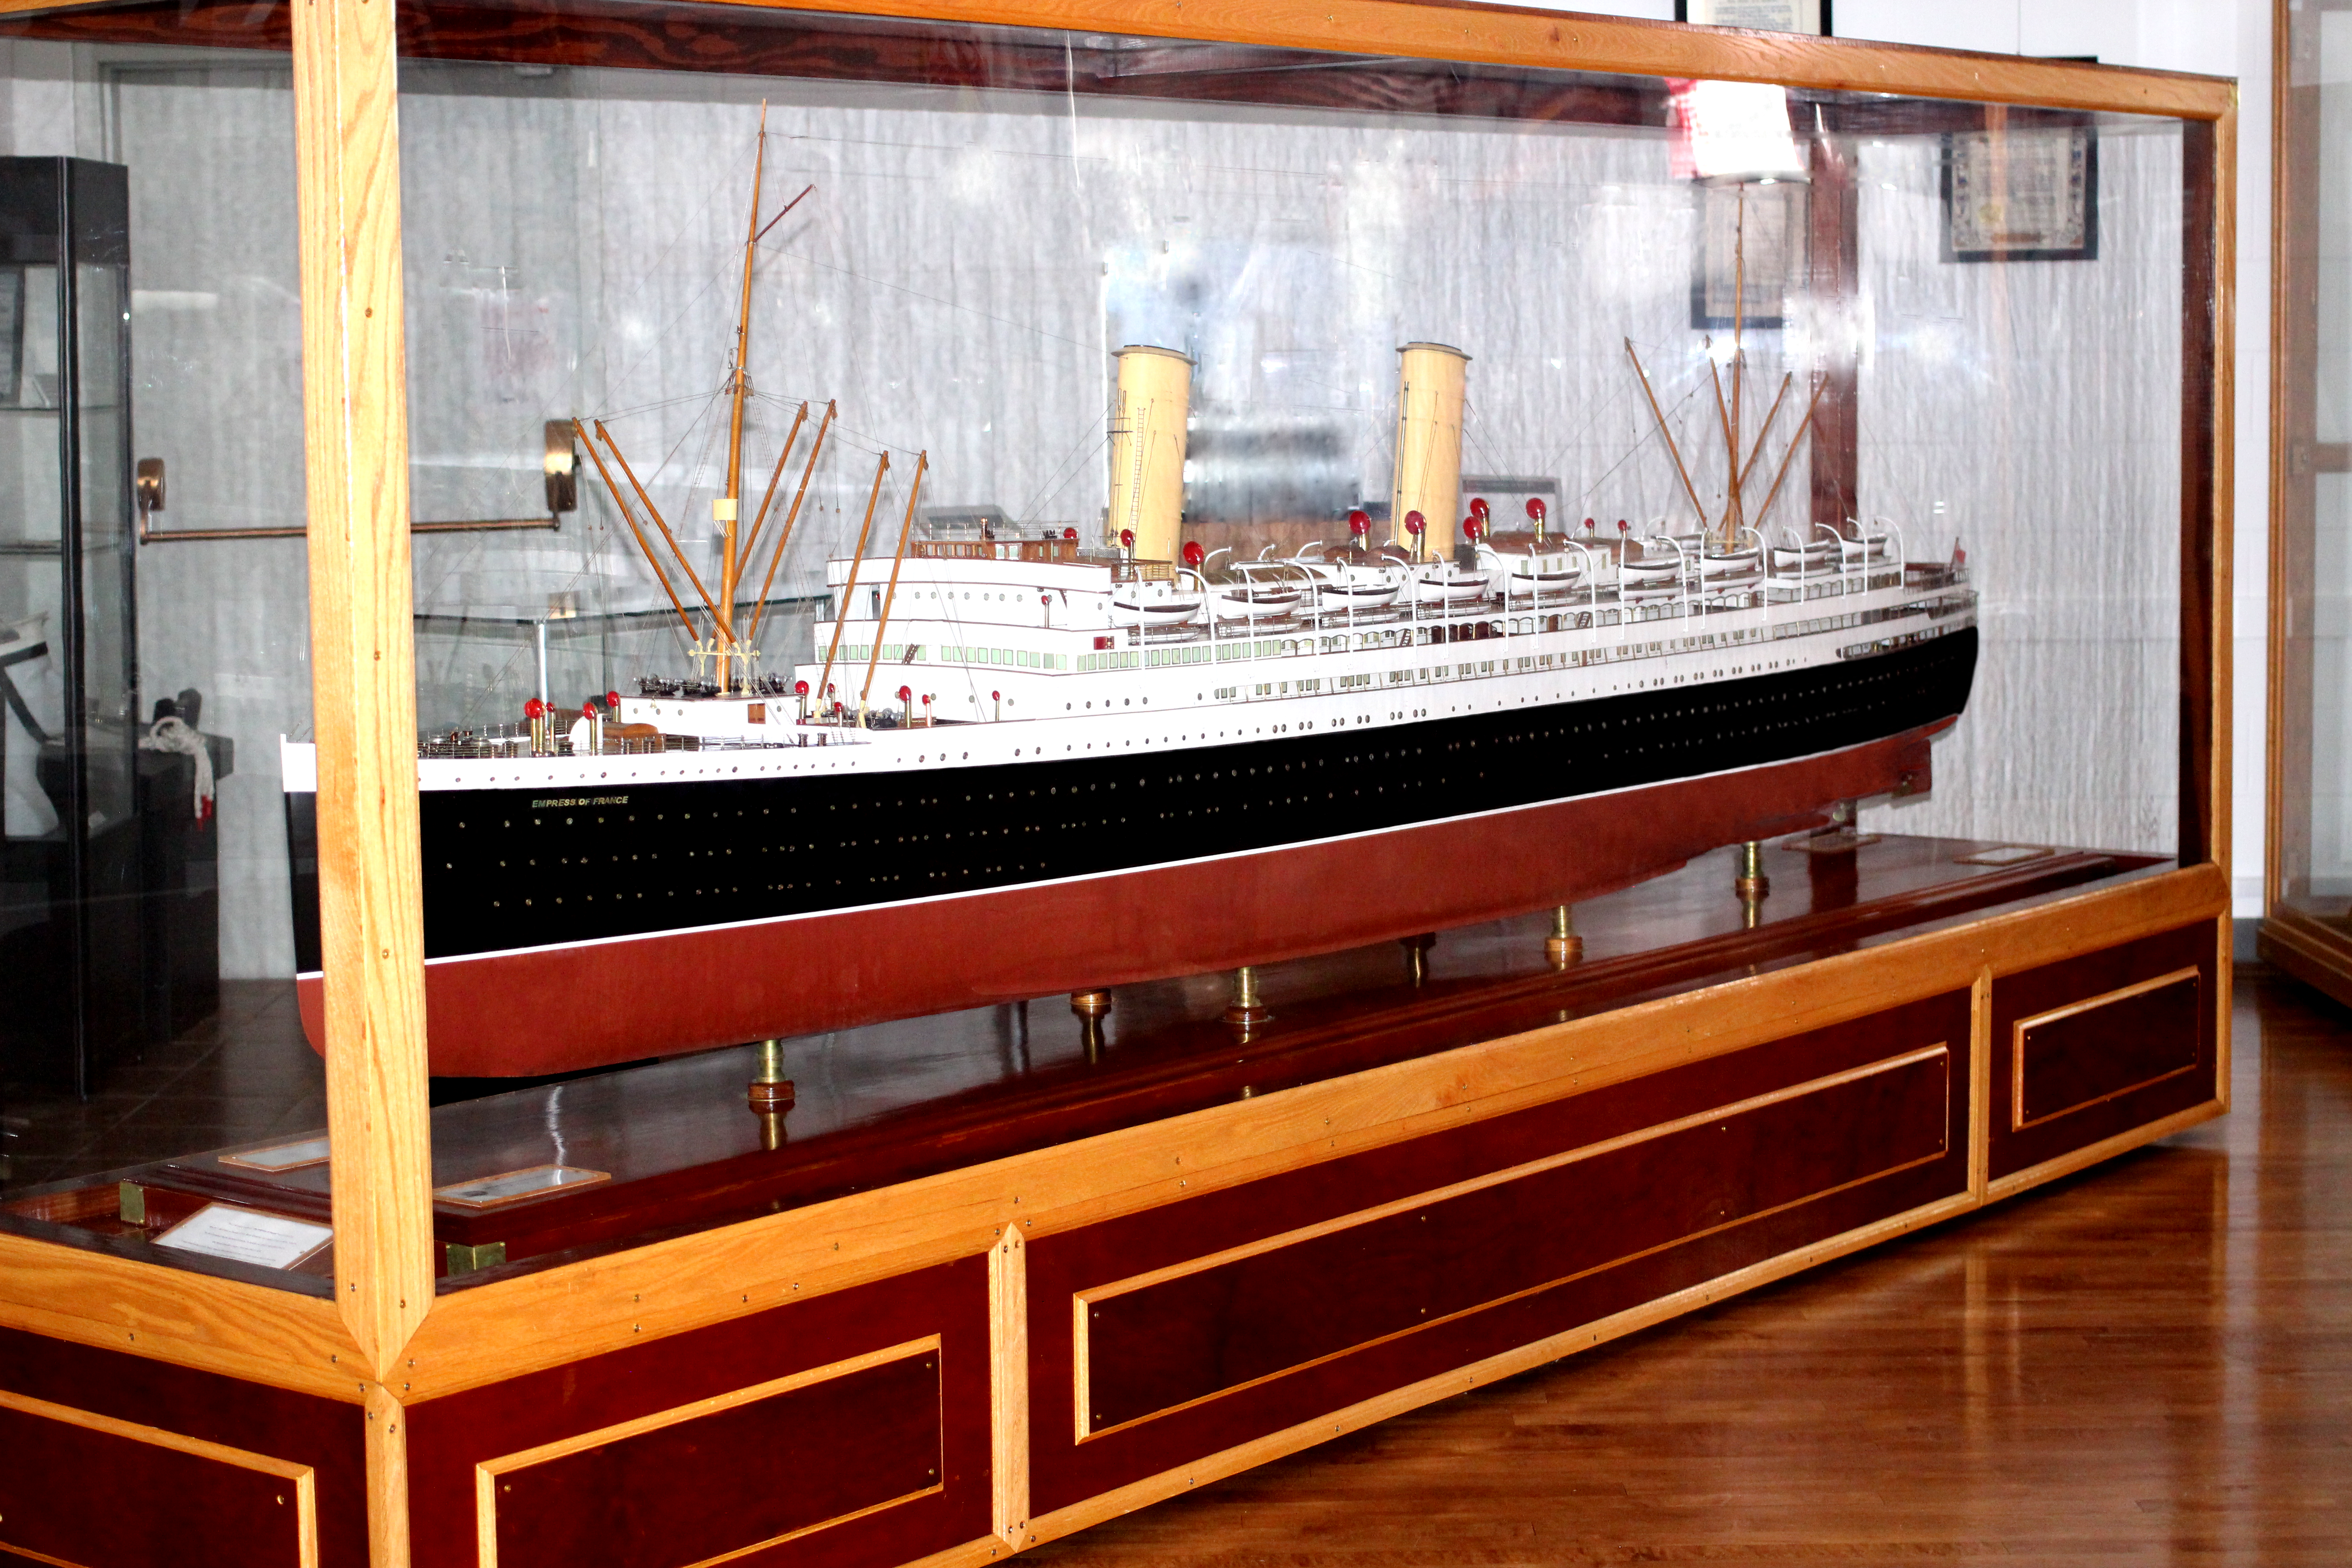 The model of the Empress of France is one of the stars of the Lac La Biche Museum. But how did the model get here and what was the original boat like? Follow the link to find out.